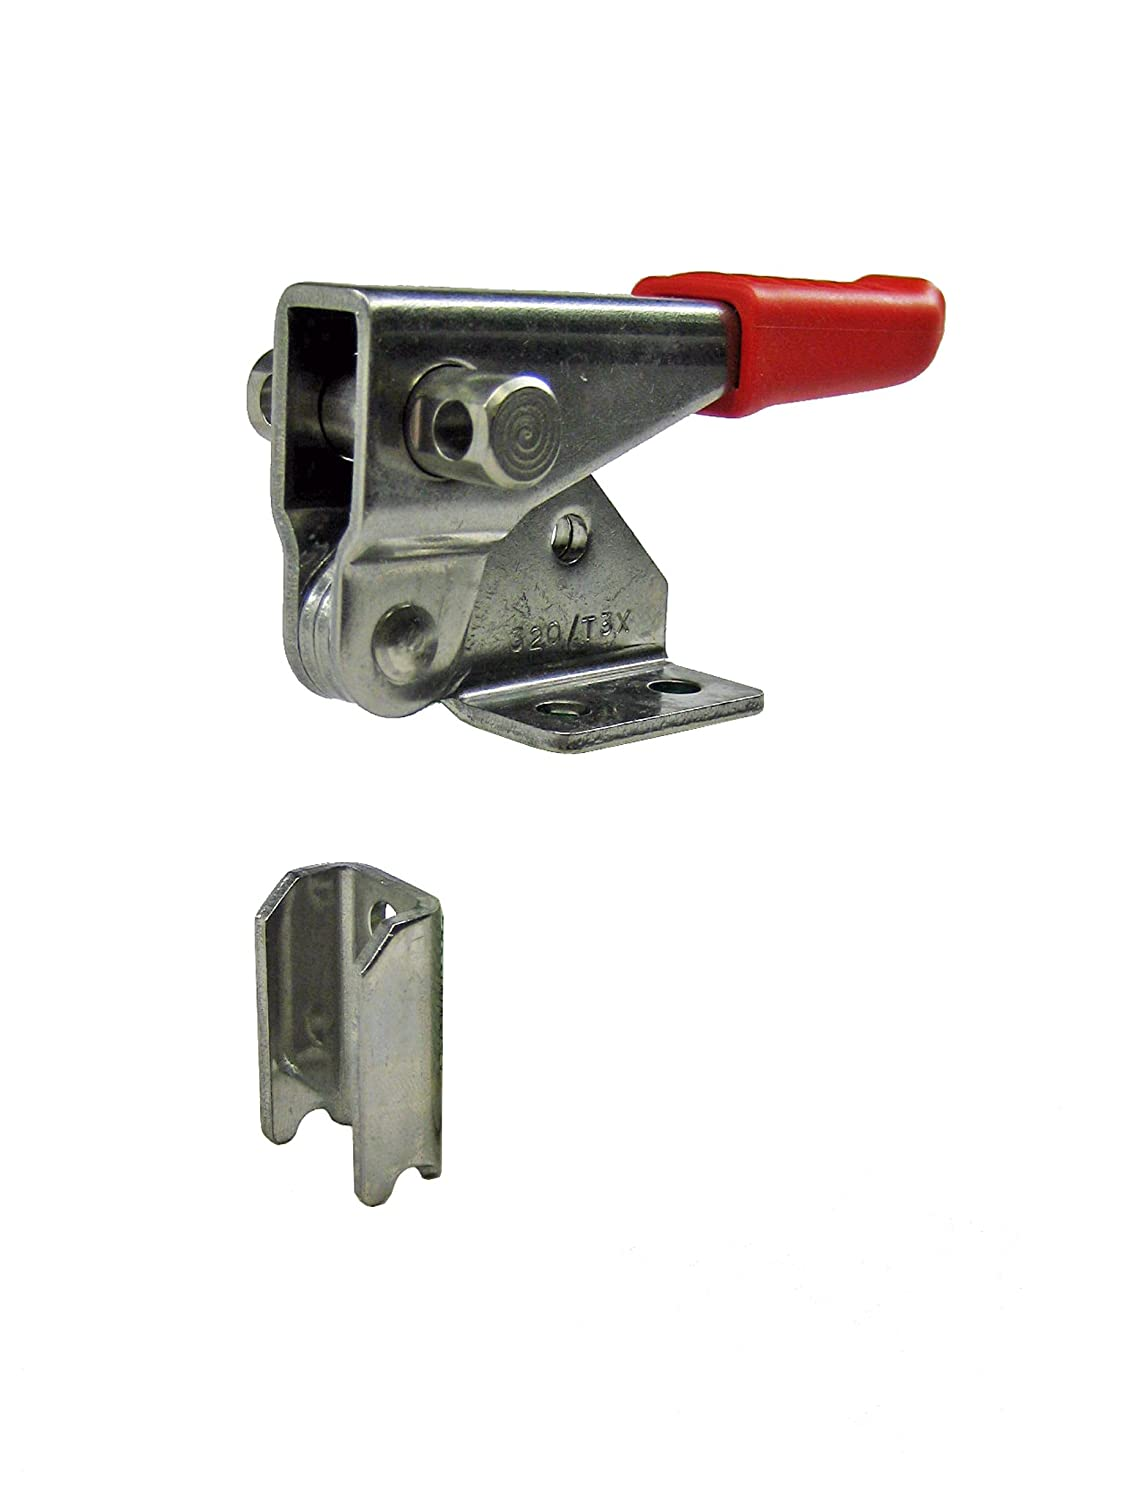 JW Winco Series GN 851.1-NI Stainless Steel Vertical Hook-Type Toggle Clamp with Latch Bracket Without Pulling Latch, Type T, Metric Size, Clamp Size 320, 3200 Newton Holding Capacity